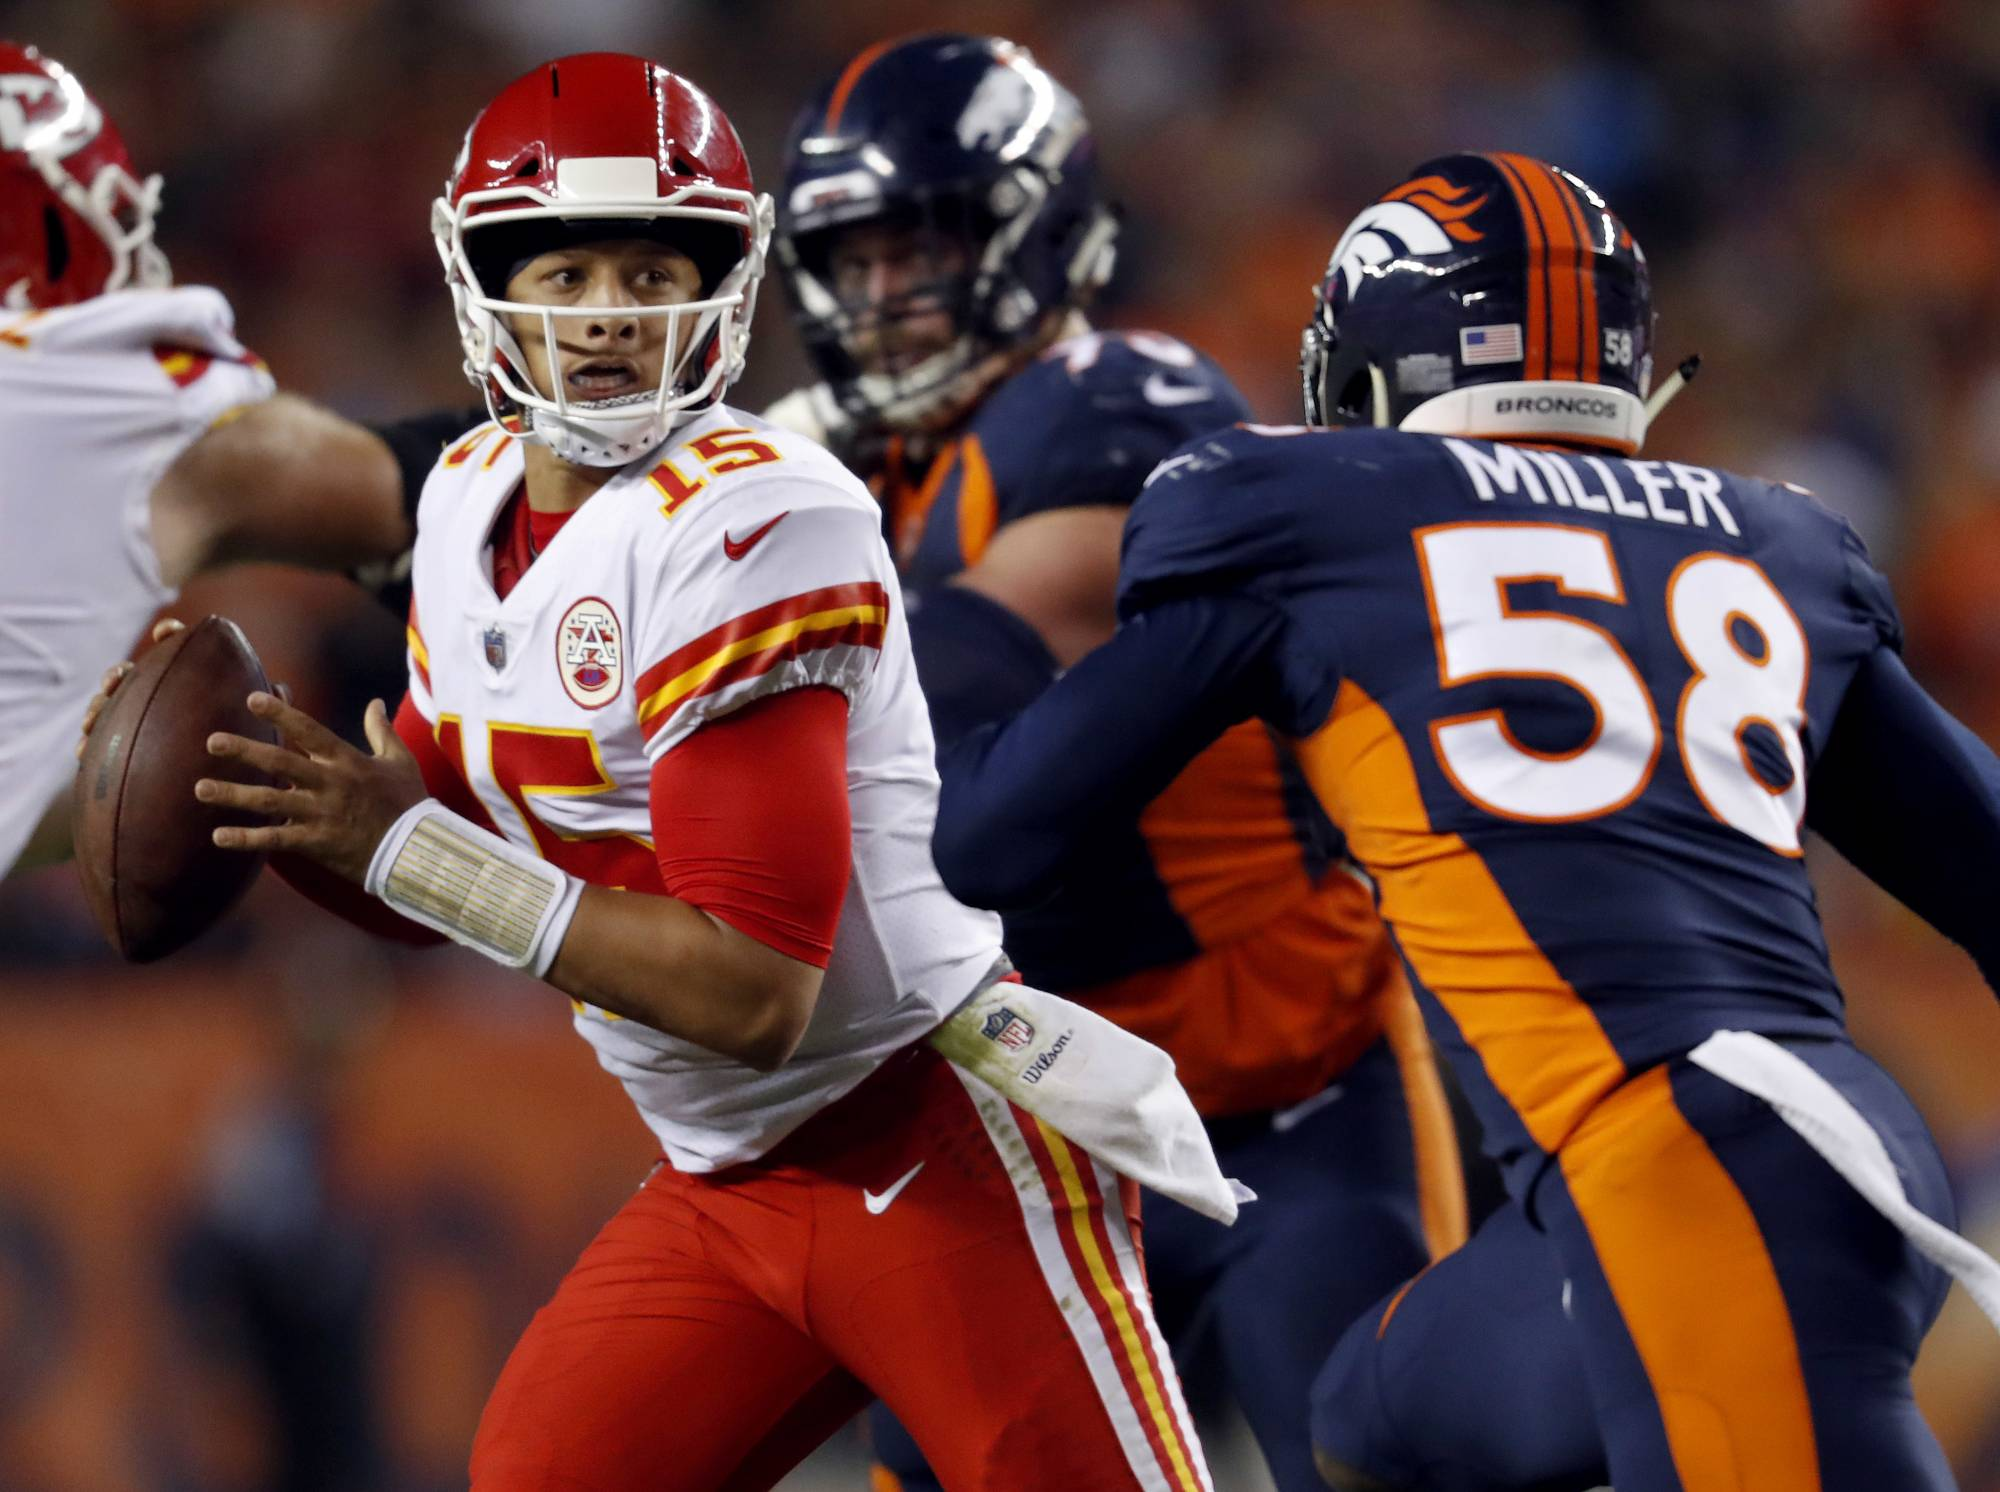 Chiefs show complete team in lopsided win over Jags